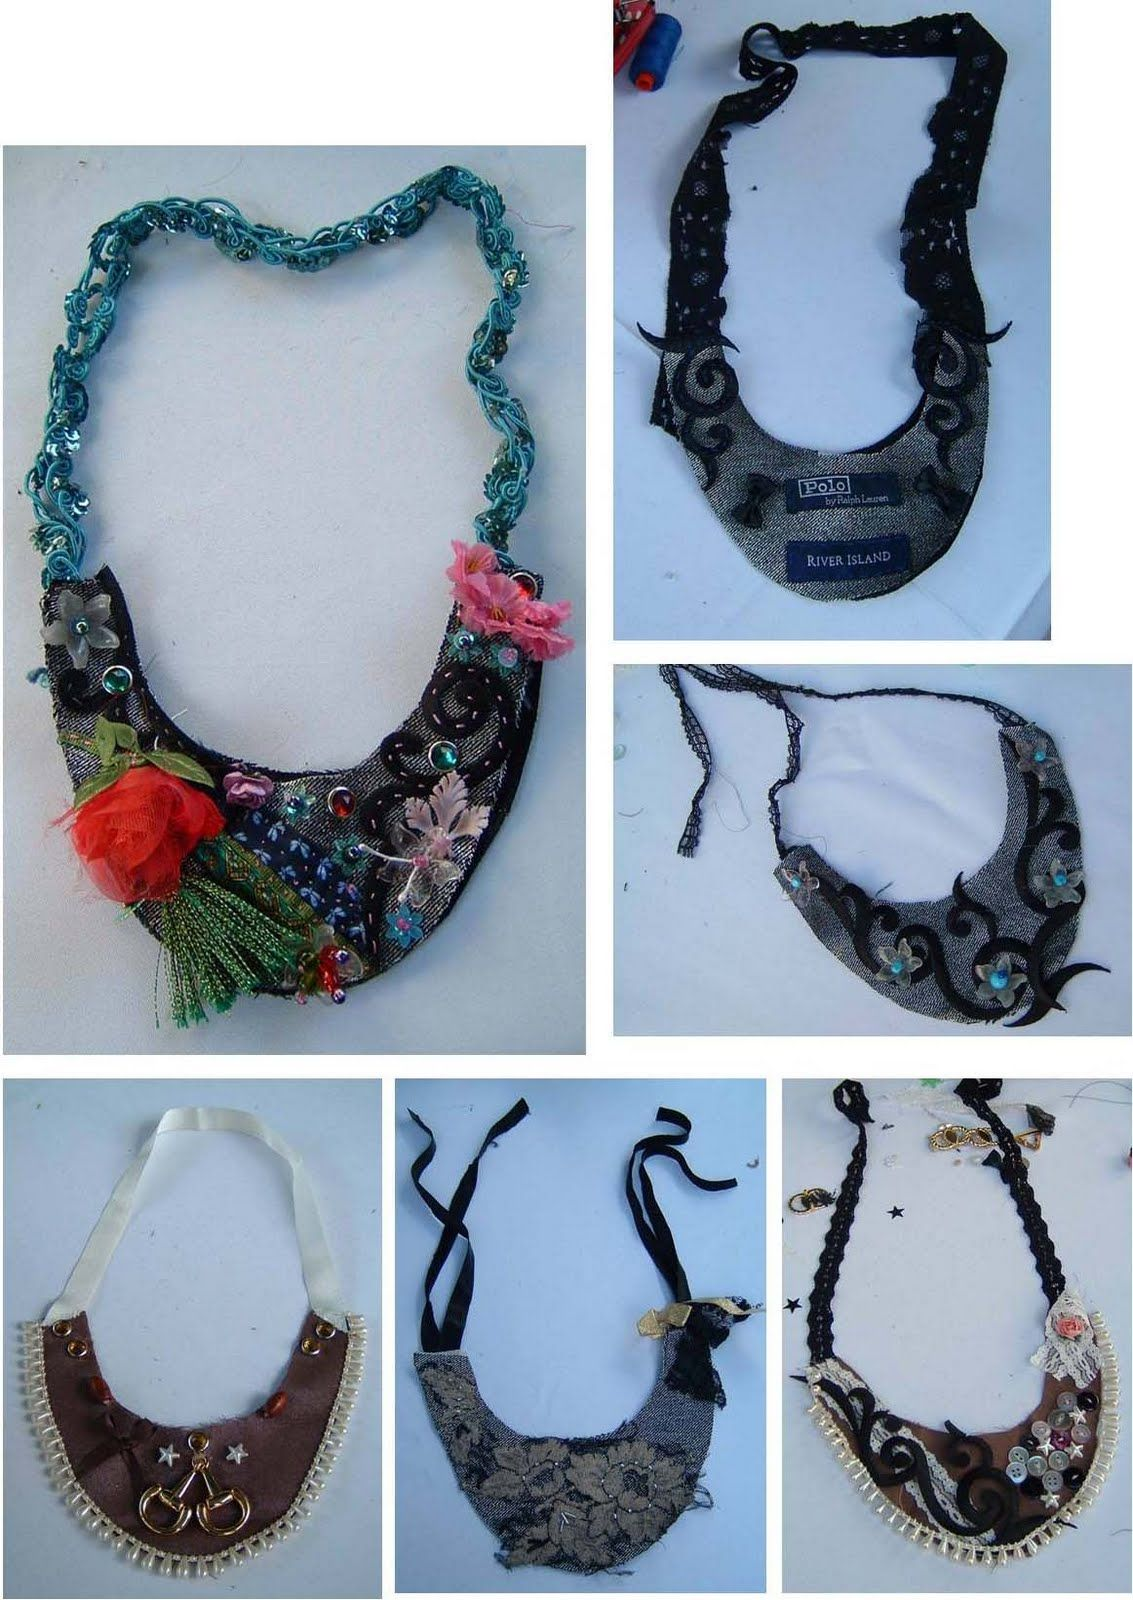 Up-cycled textile jewelry | My Style | Pinterest | Textile jewelry ...